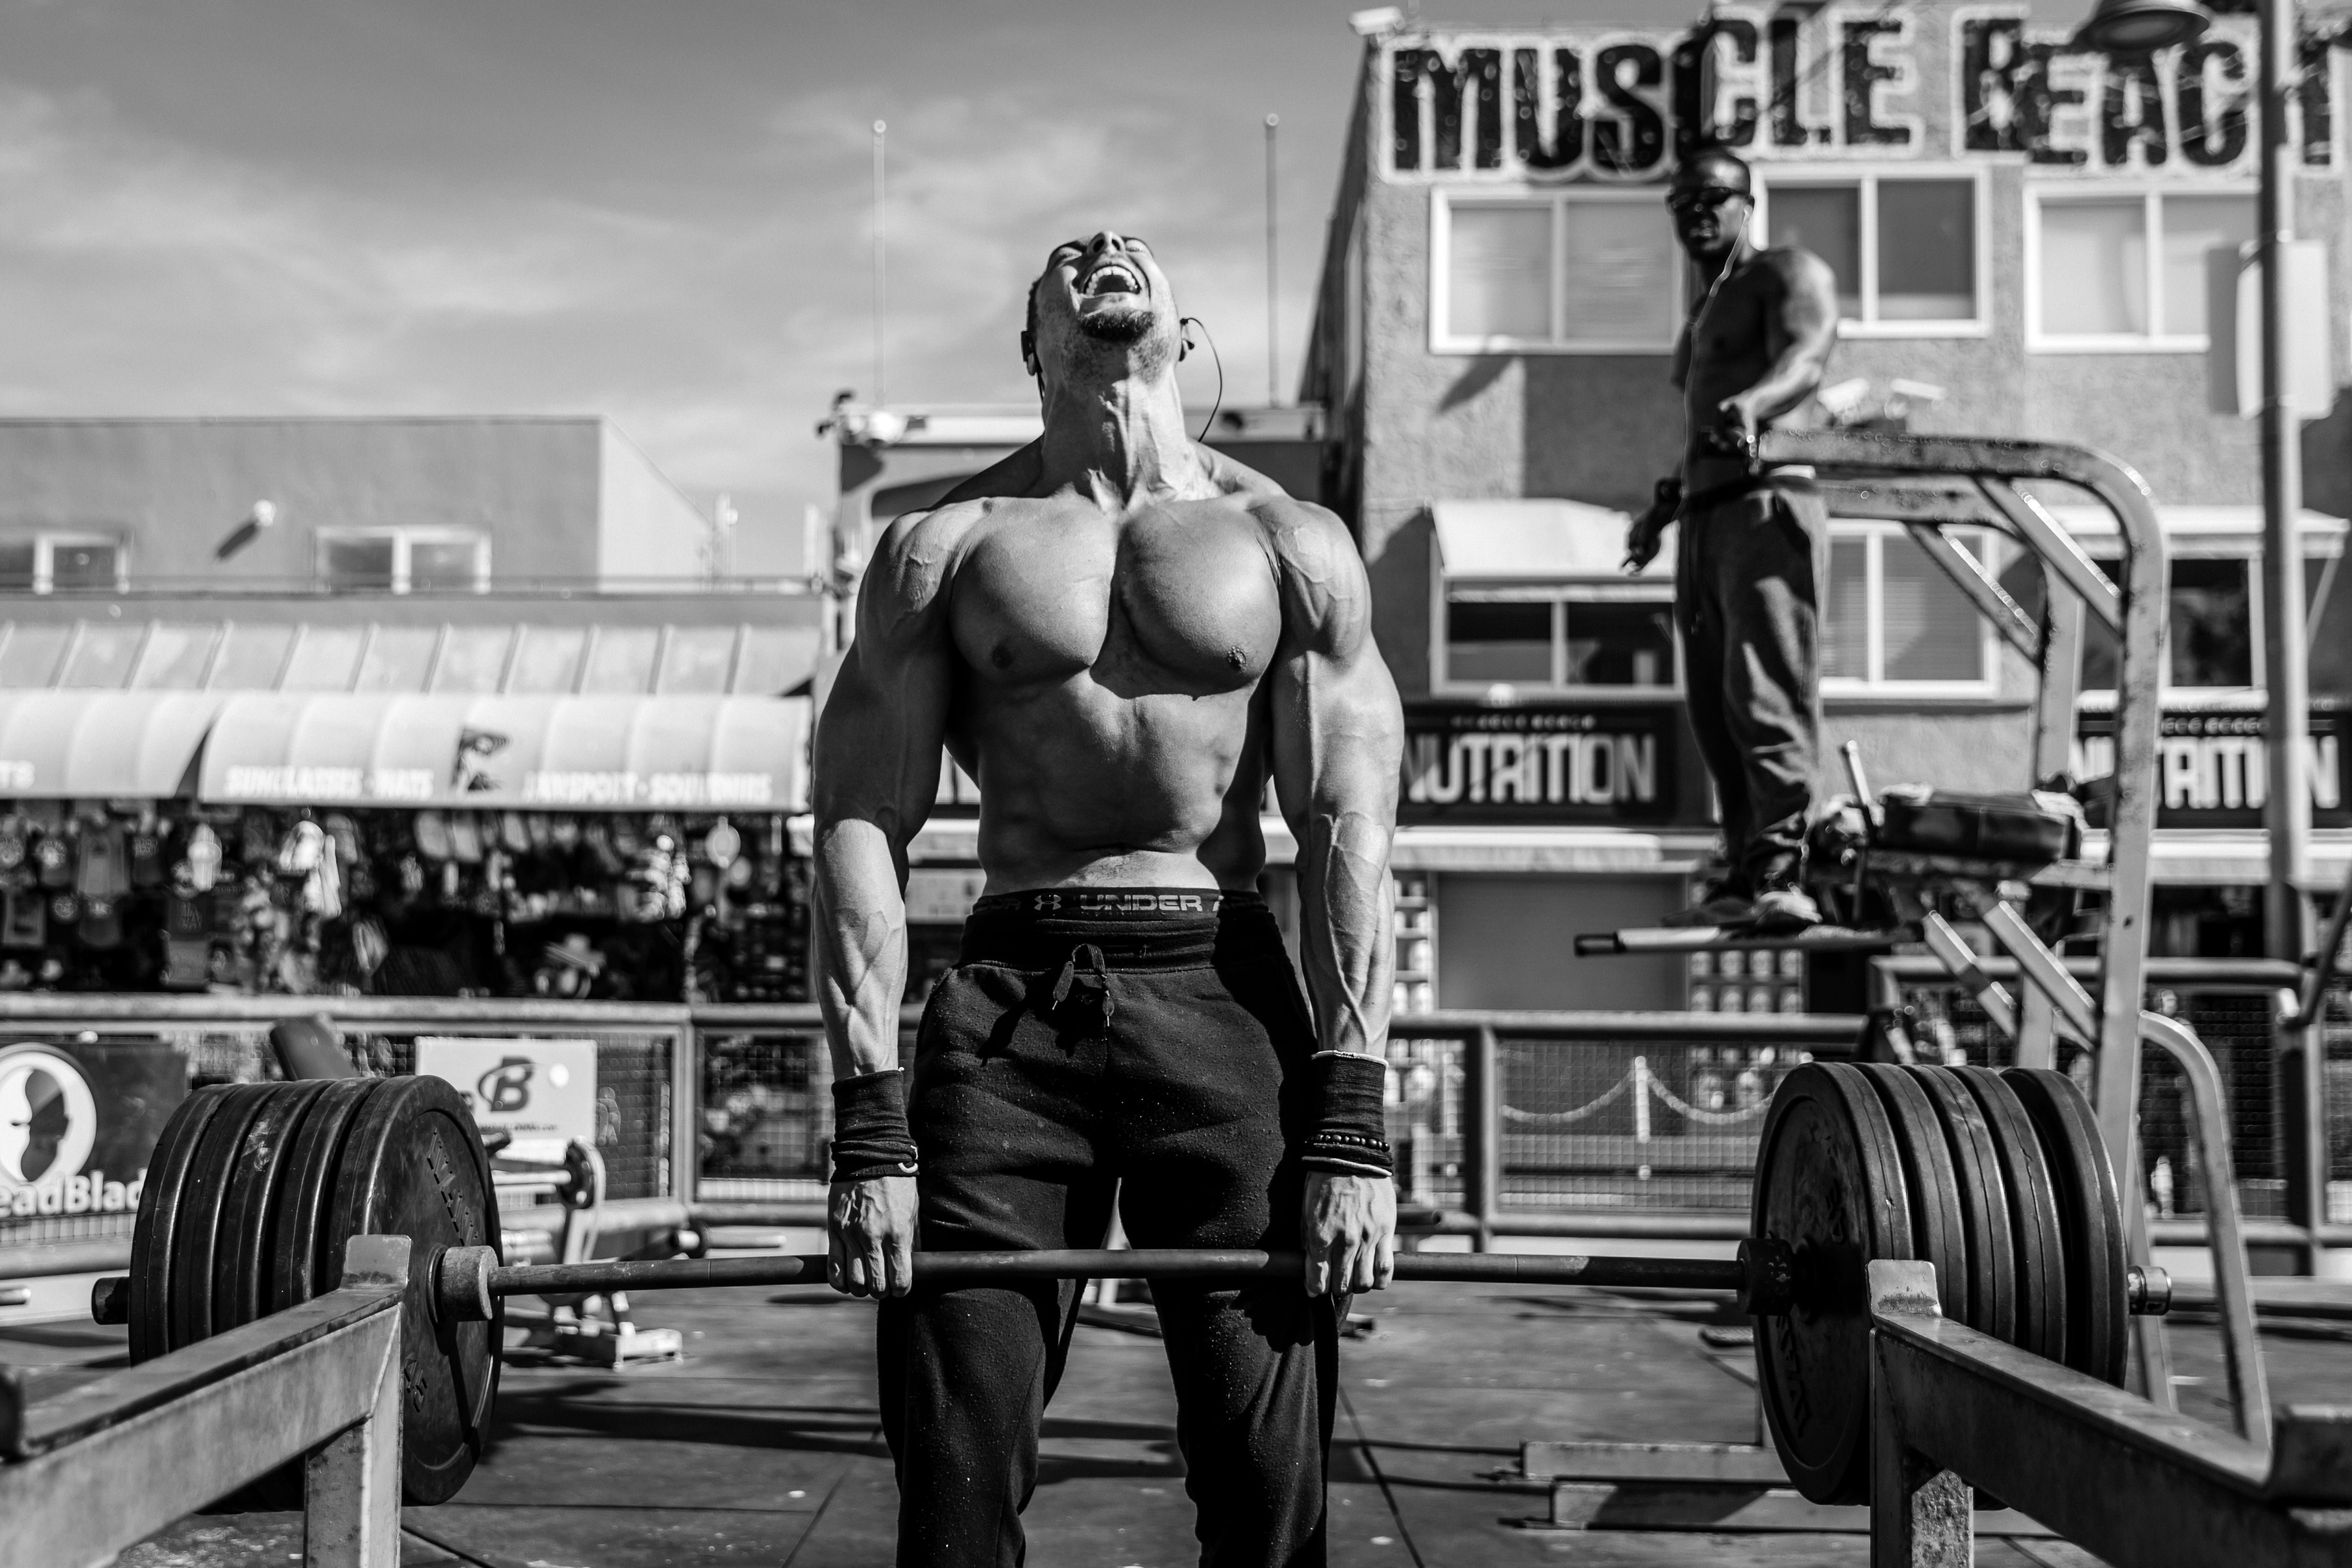 A weightlifting enthusiast works out at Muscle Beach, an outdoor gym in Venice, California. The gym has long been a hotspot for famous bodybuilders, including Arnold Schwarzenegger.